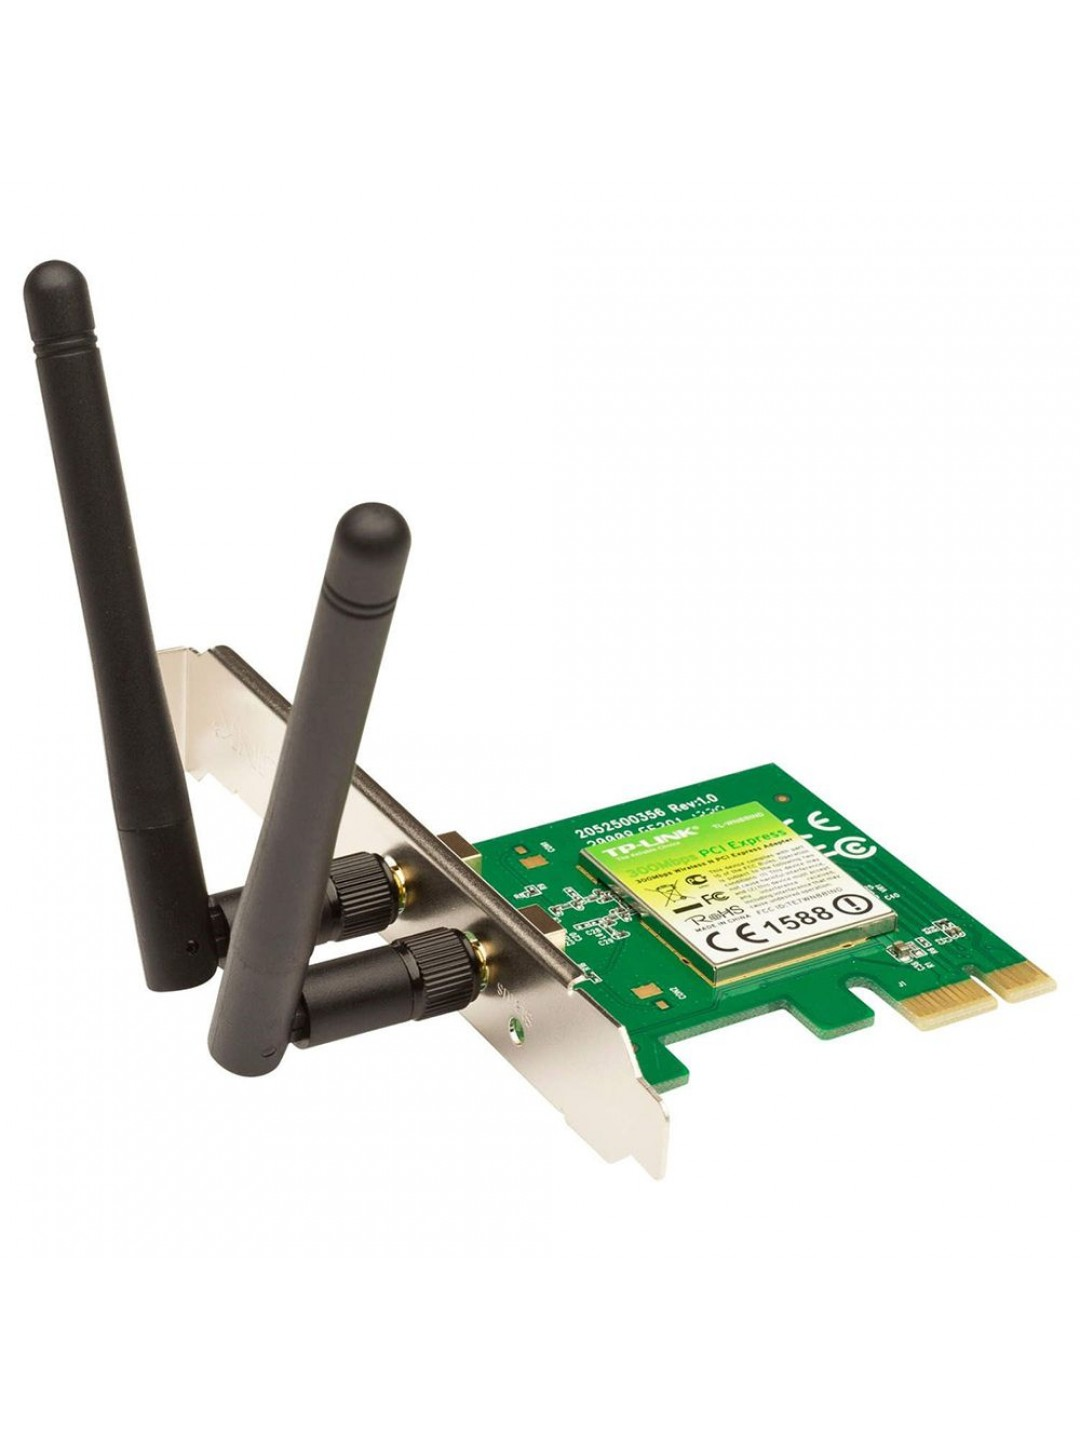 TP-LINK 300MBPSWIRELESS N TL-WN881ND PCI EXPRESS ADAPTER